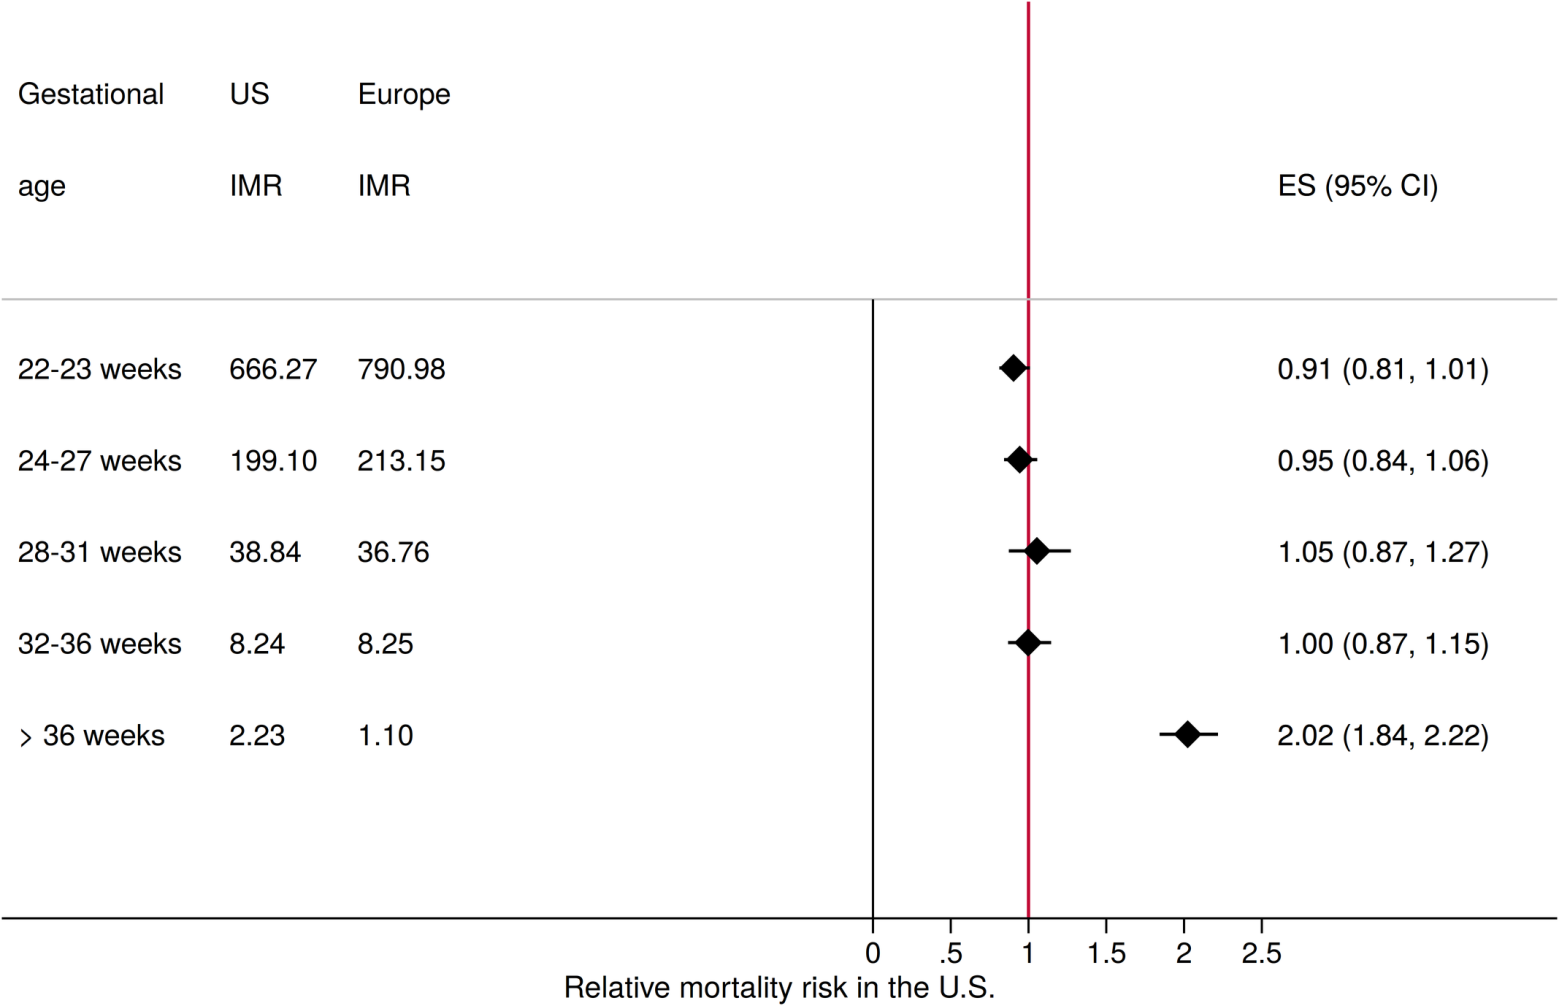 Relative mortality risk in the US and Europe by gestational age category.